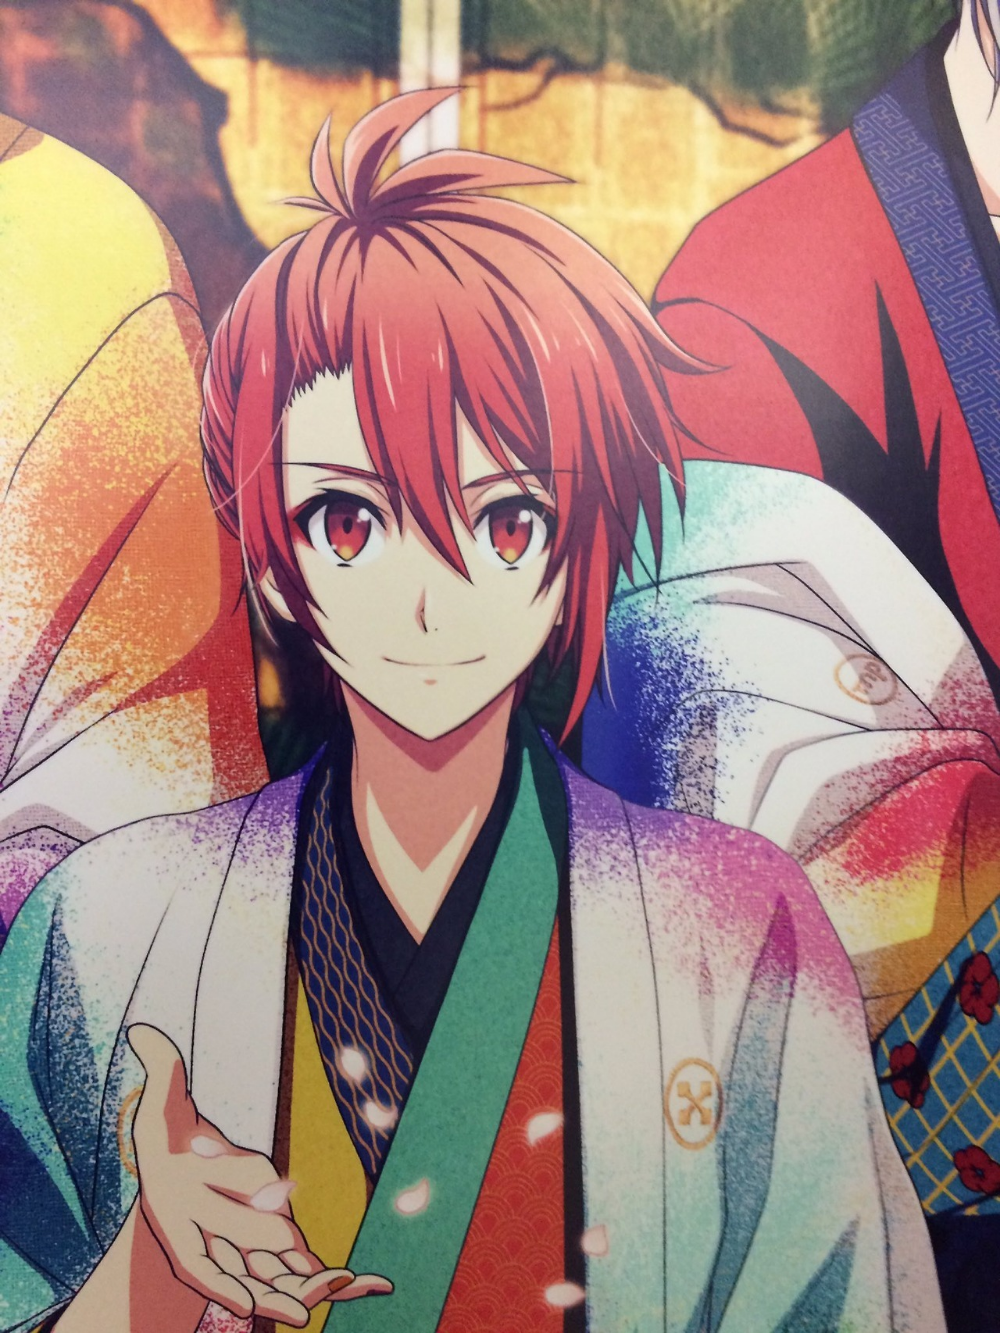 Pin by 琪琪 on idolish7 in 2020 (With images)